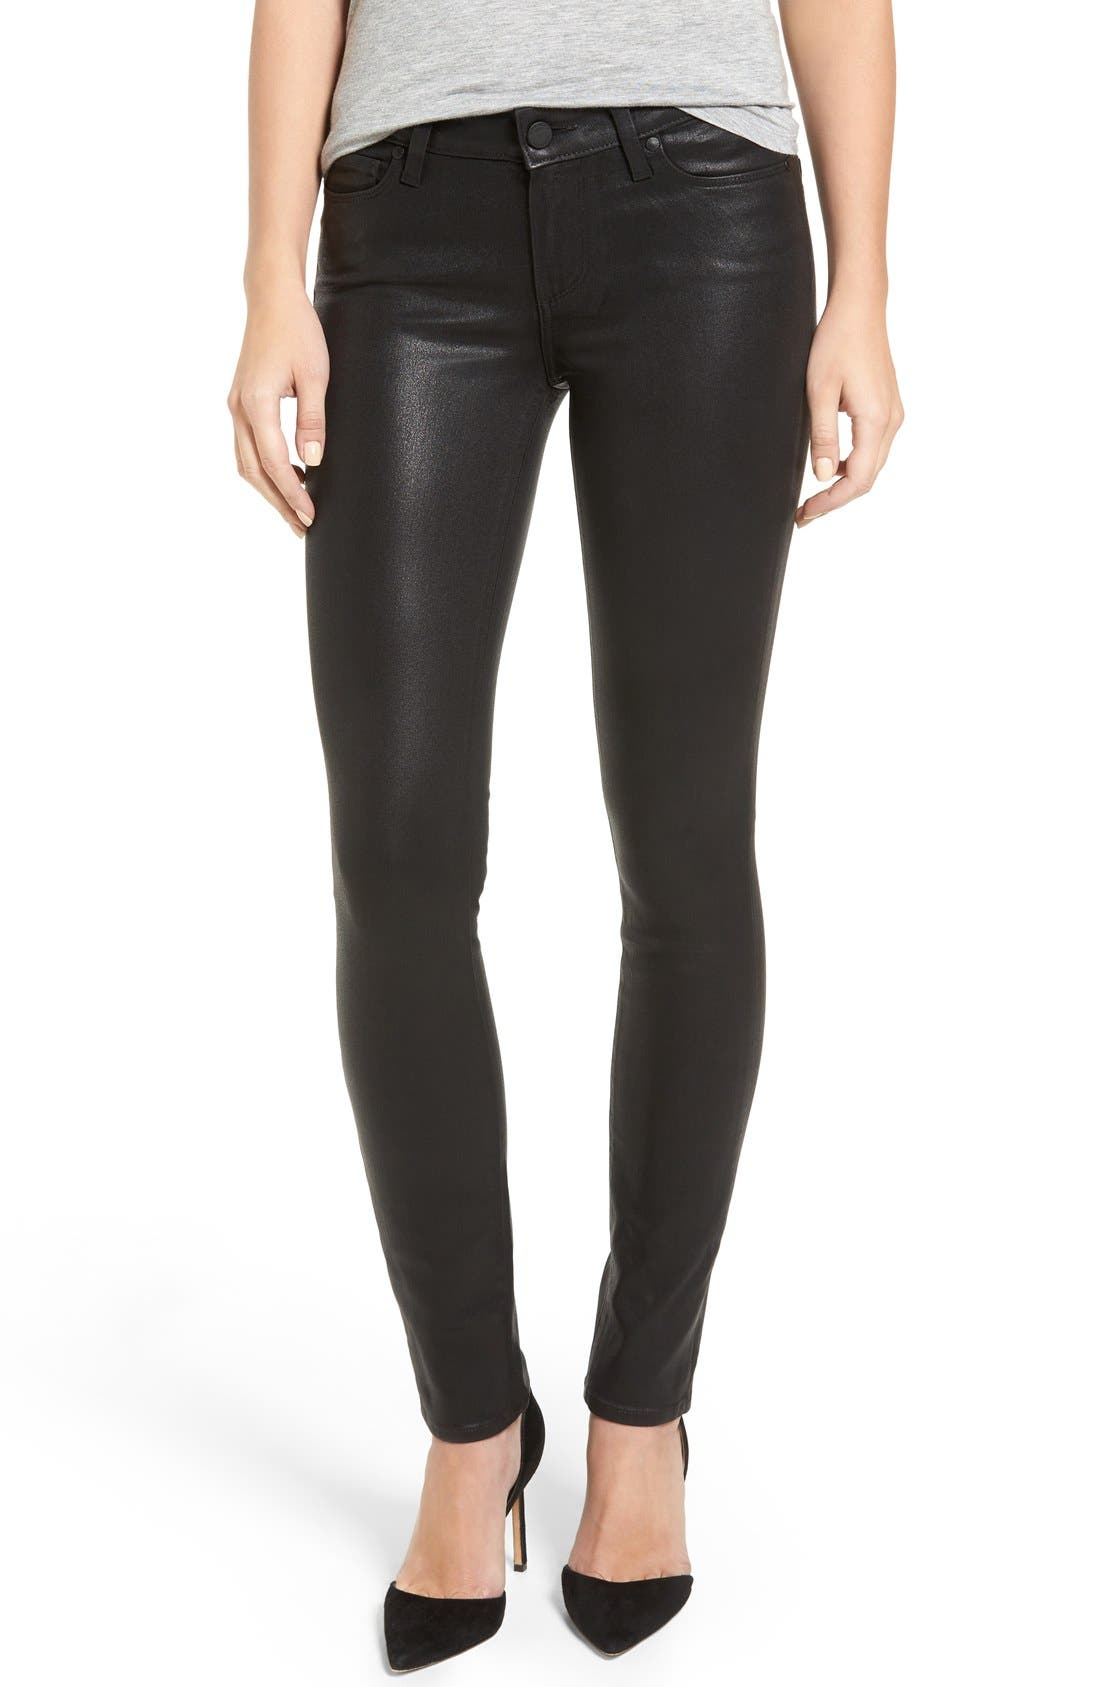 Alternate Image 1 Selected - PAIGE Verdugo Coated Ankle Skinny Jeans (Black Fog Luxe Coated) (Nordstrom Exclusive)